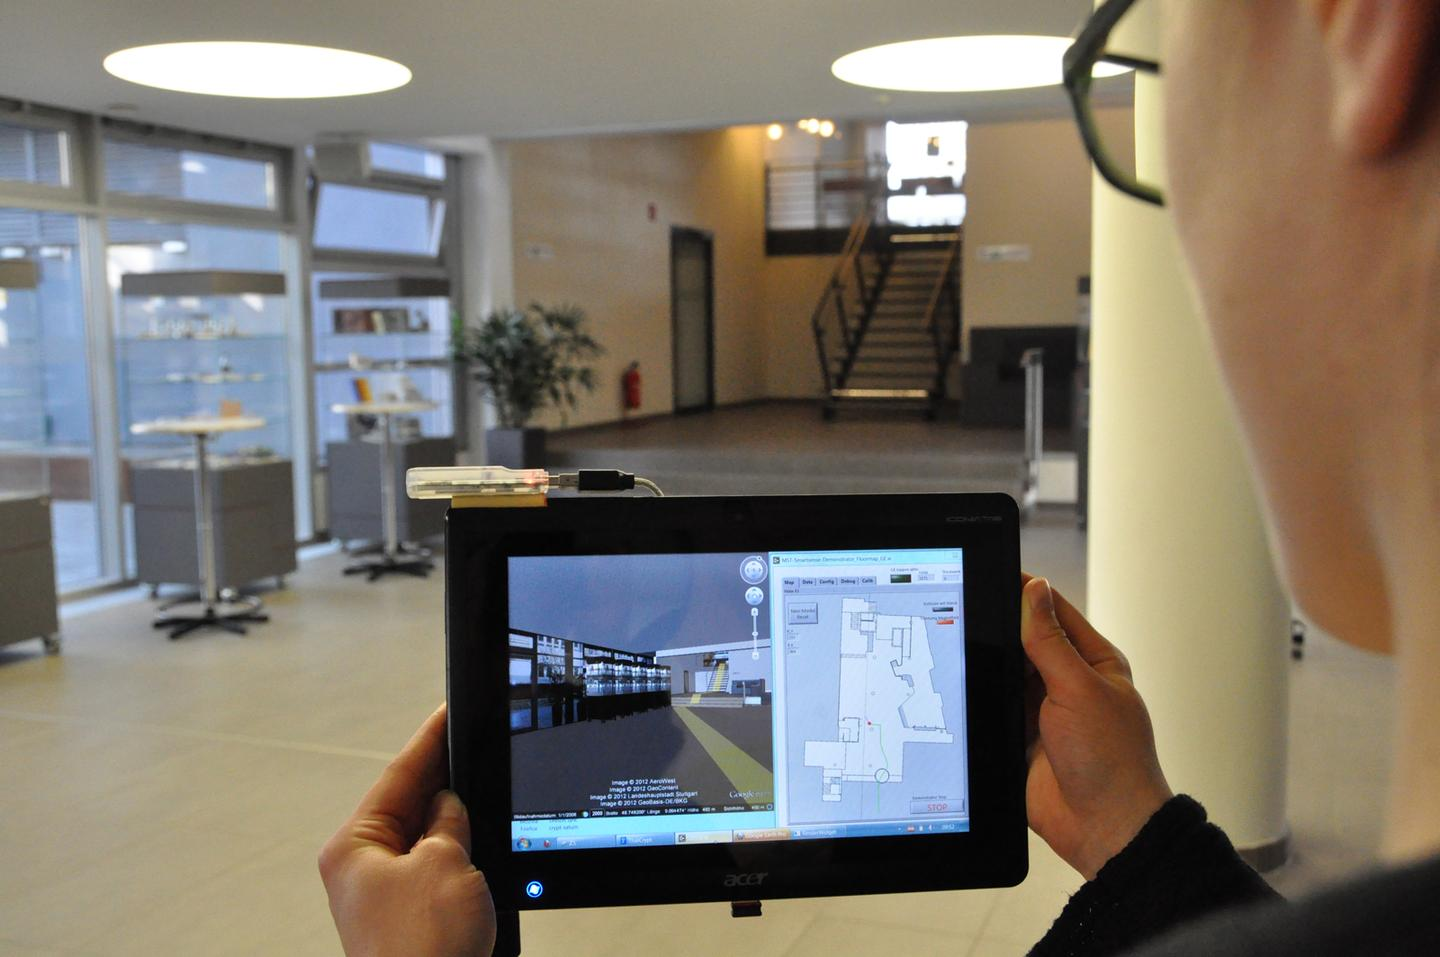 The Smartsense system provides real-time turn by turn navigation indoors (Photo: Fraunhofer IPA)